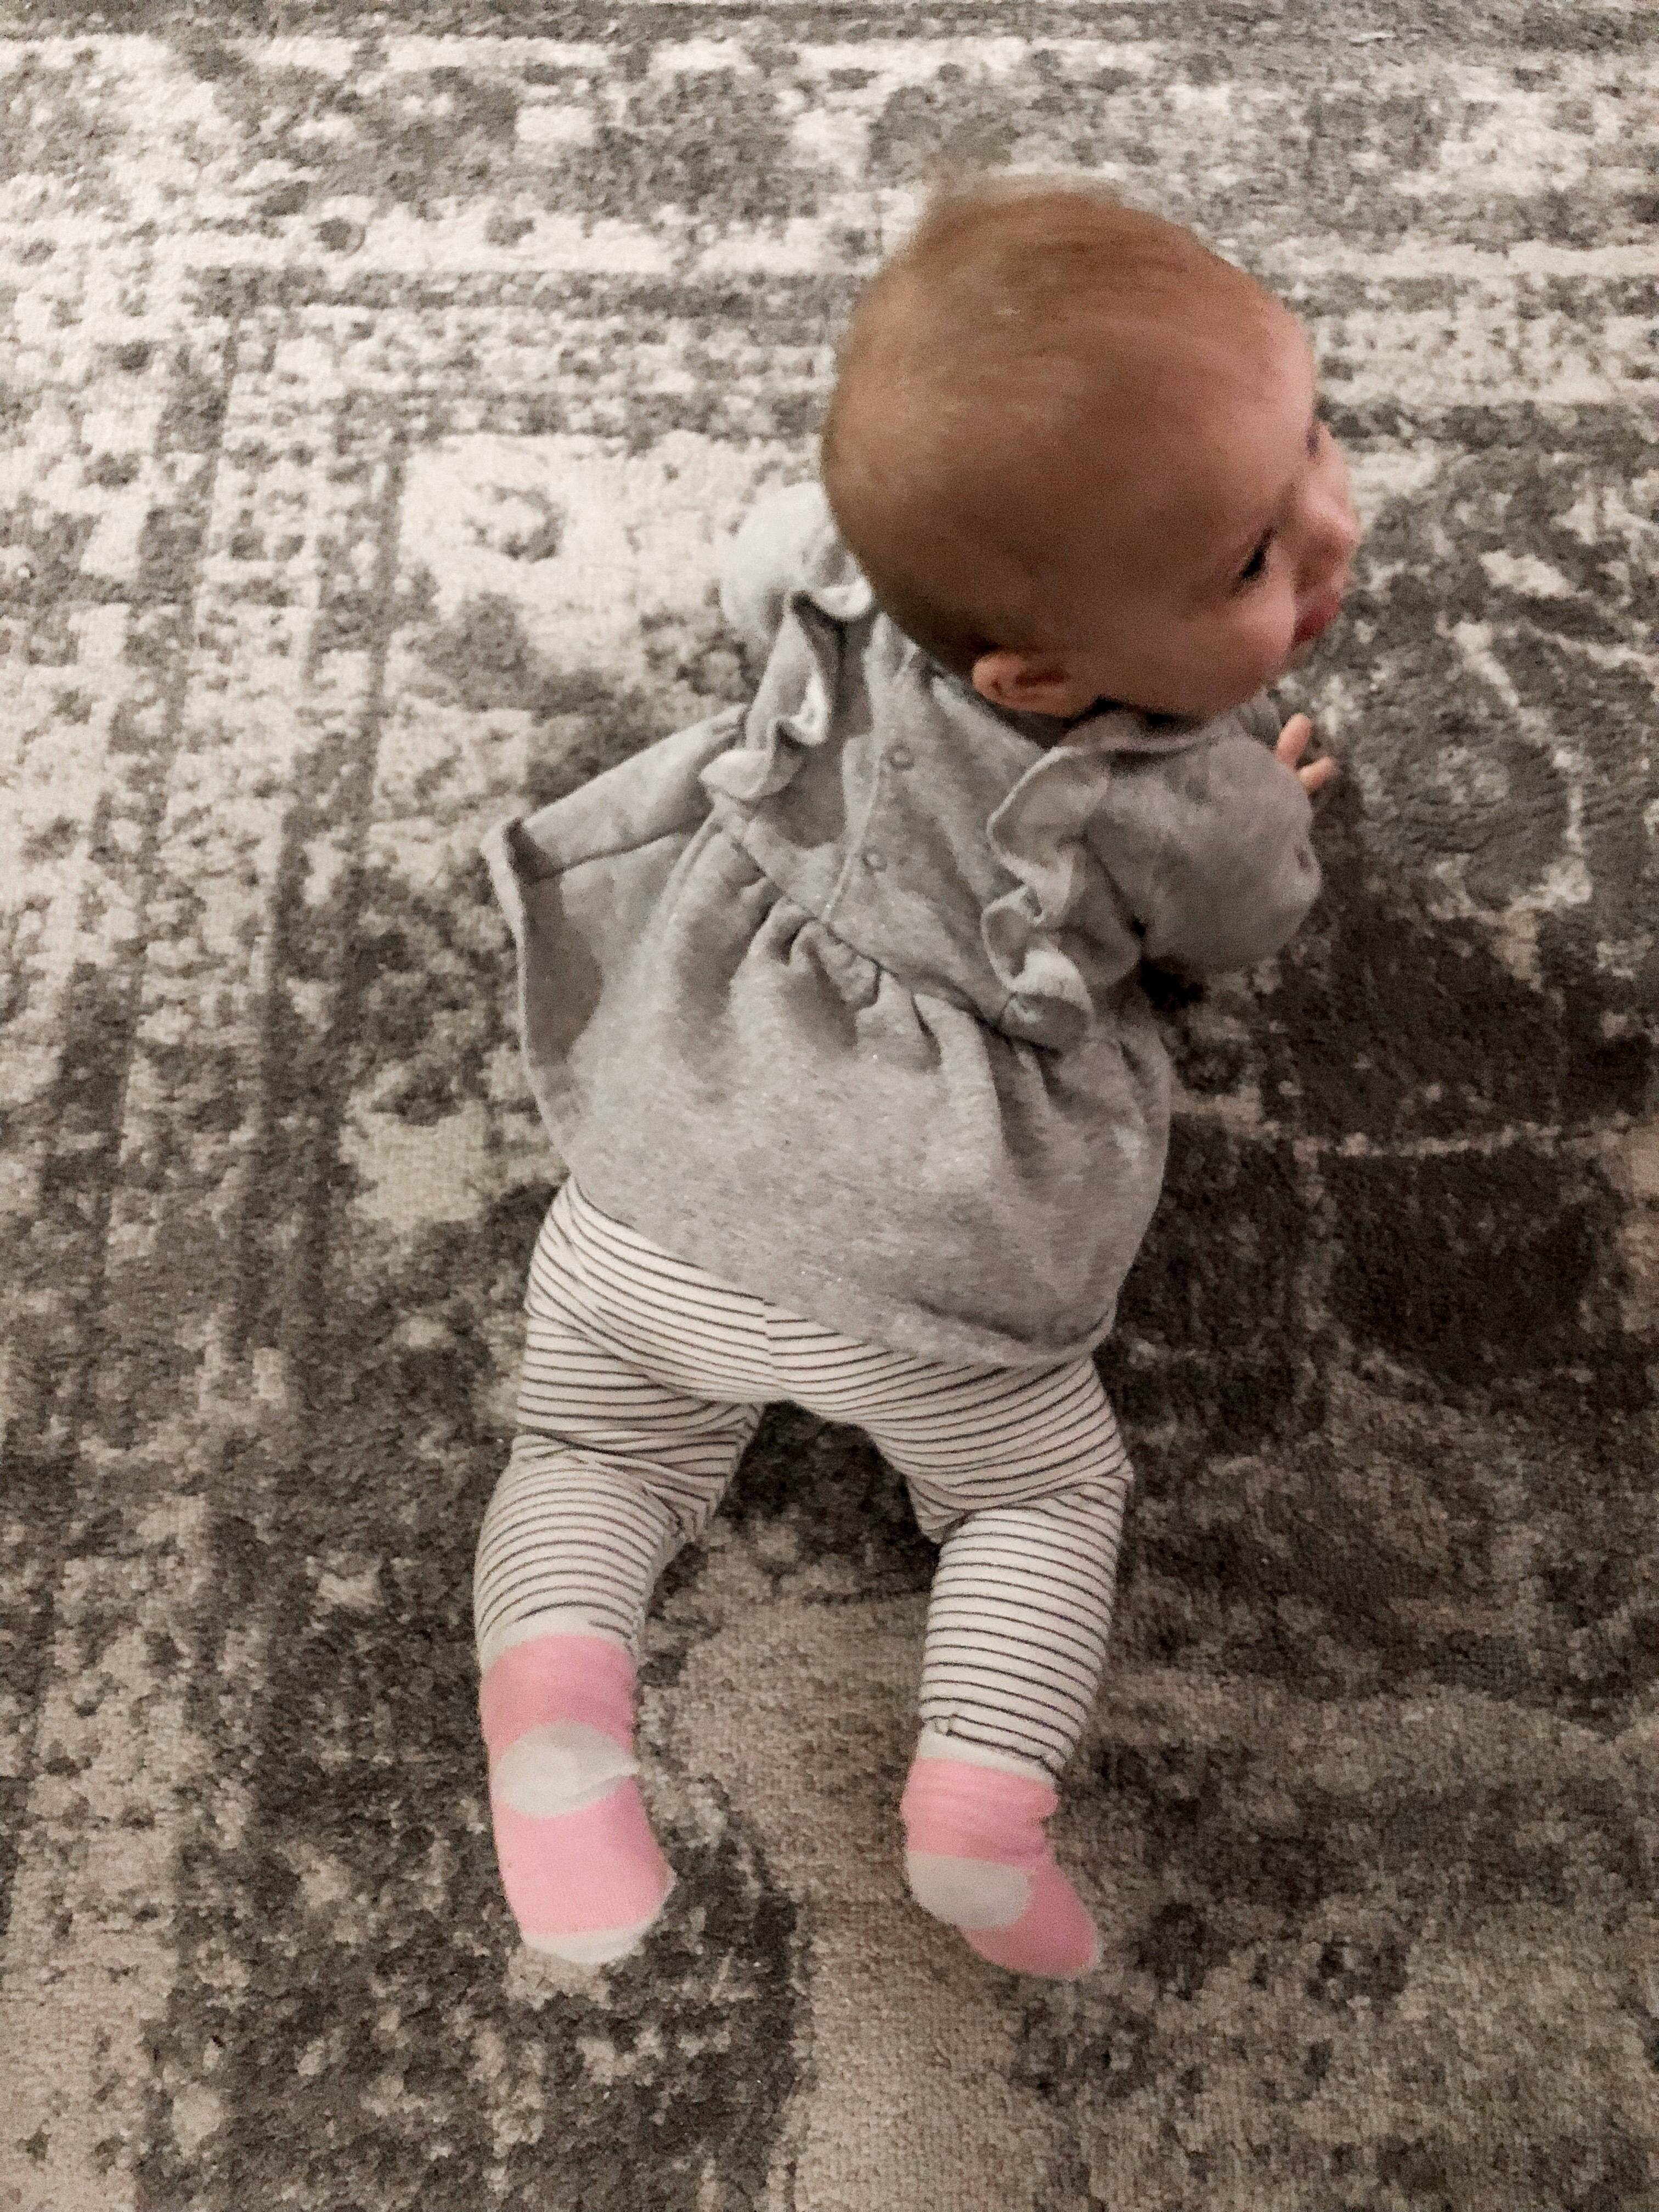 Tired of stubborn stains in your baby clothing? Looking for an inexpensive way to get rid of the stains? I have found what works utilizing only 2 ingredients. Check it out and see for yourself how easily you can remove stains. | Baby | Baby clothing | Stains | How to |